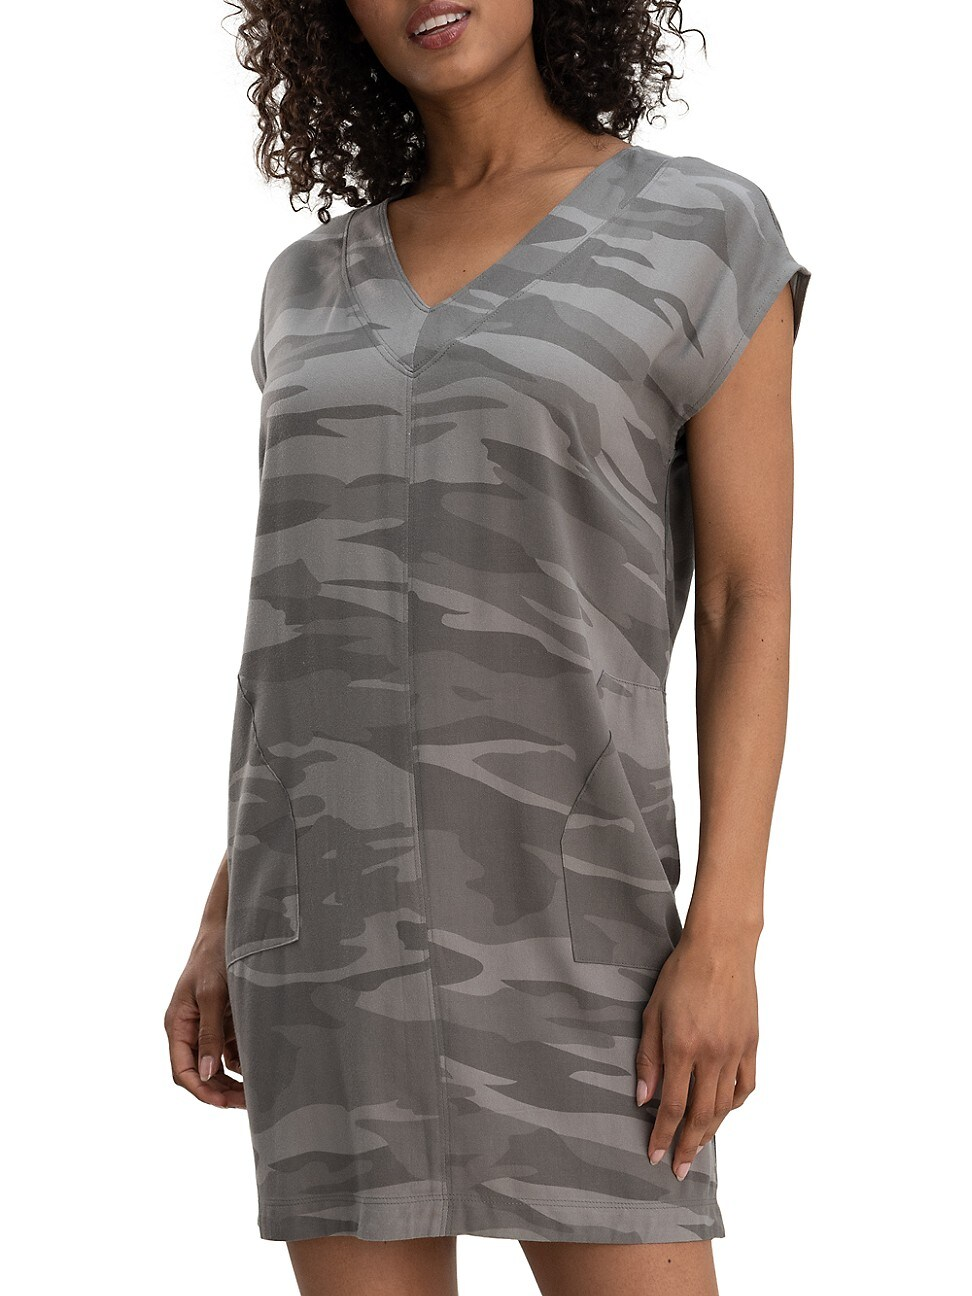 Splendid WOMEN'S EVIAN CAMO T-SHIRT